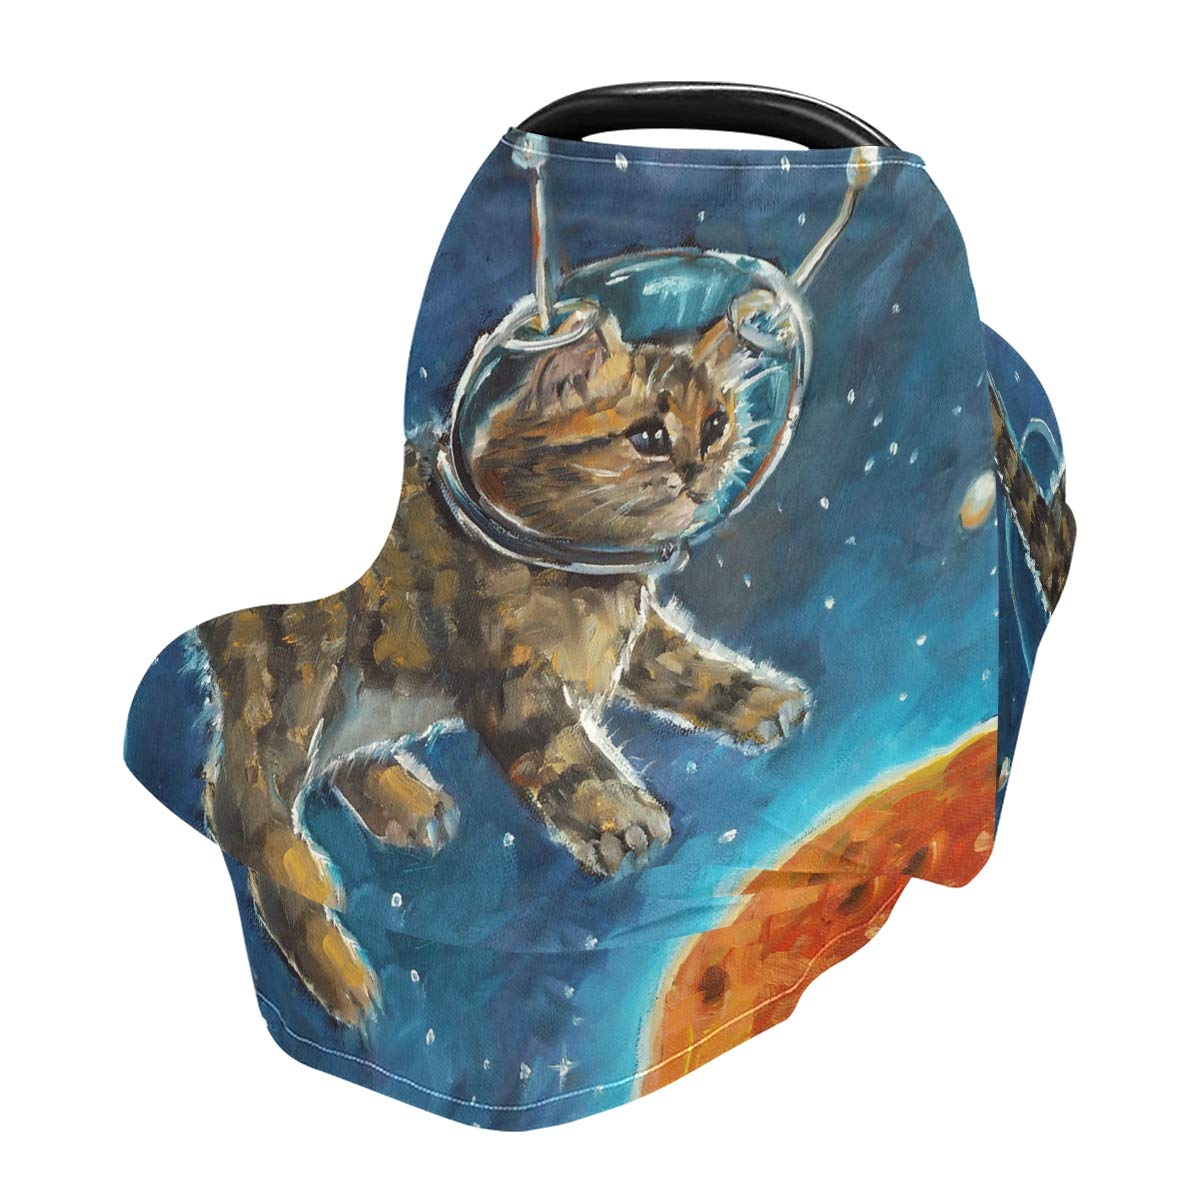 Nursing Cover Breastfeeding Soft Carseat Canopy Astronauts Cat Multi Use for Baby Car Seat Covers Canopy Shopping Cart Cover Scarf Light Blanket Stroller Cover